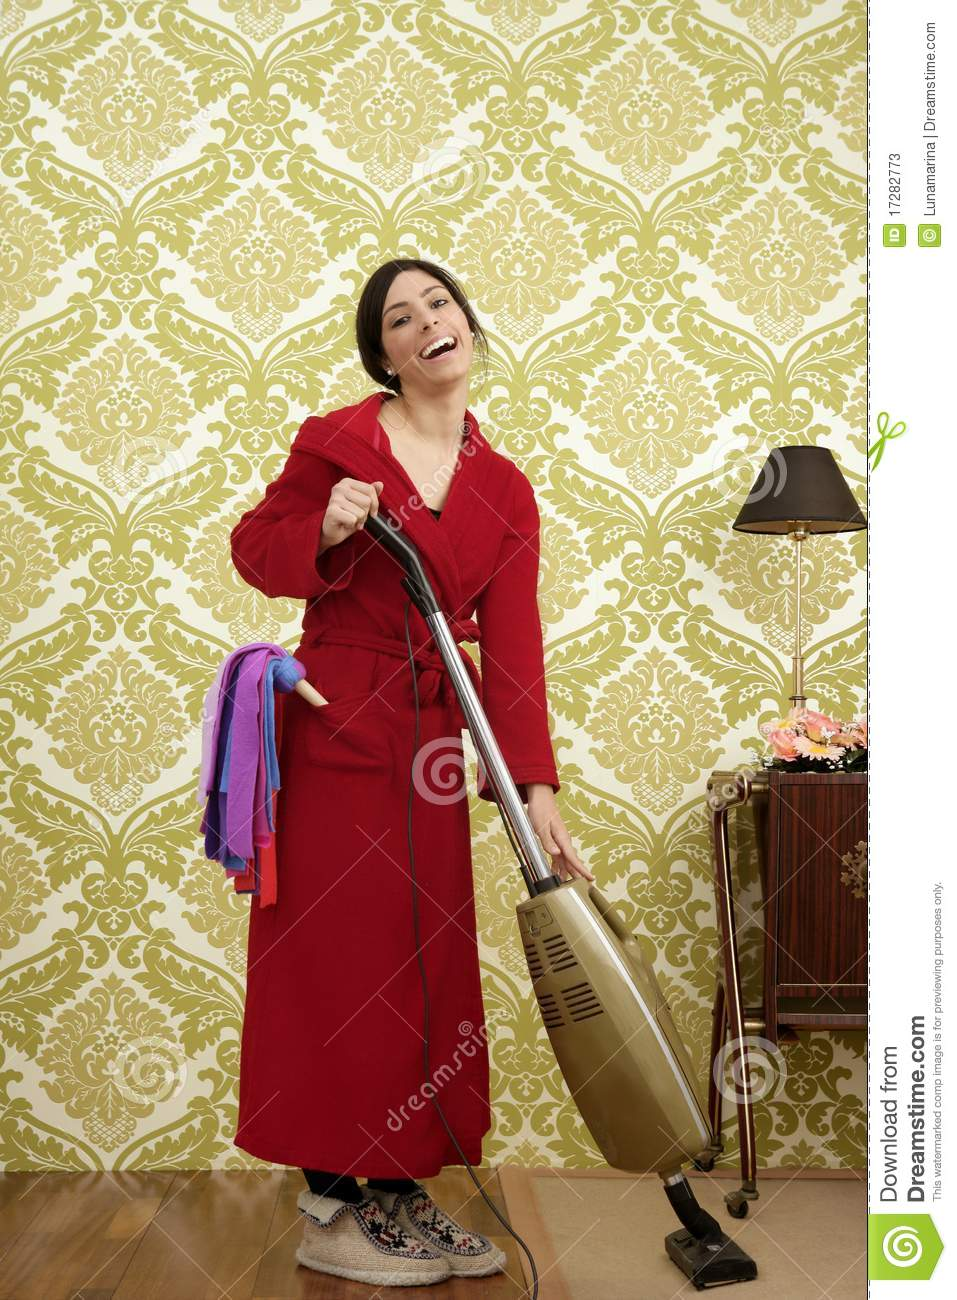 Beautiful Indian Girl Face Wallpaper Bathrobe Retro Housewife Woman Vacuum Cleaner Stock Photos